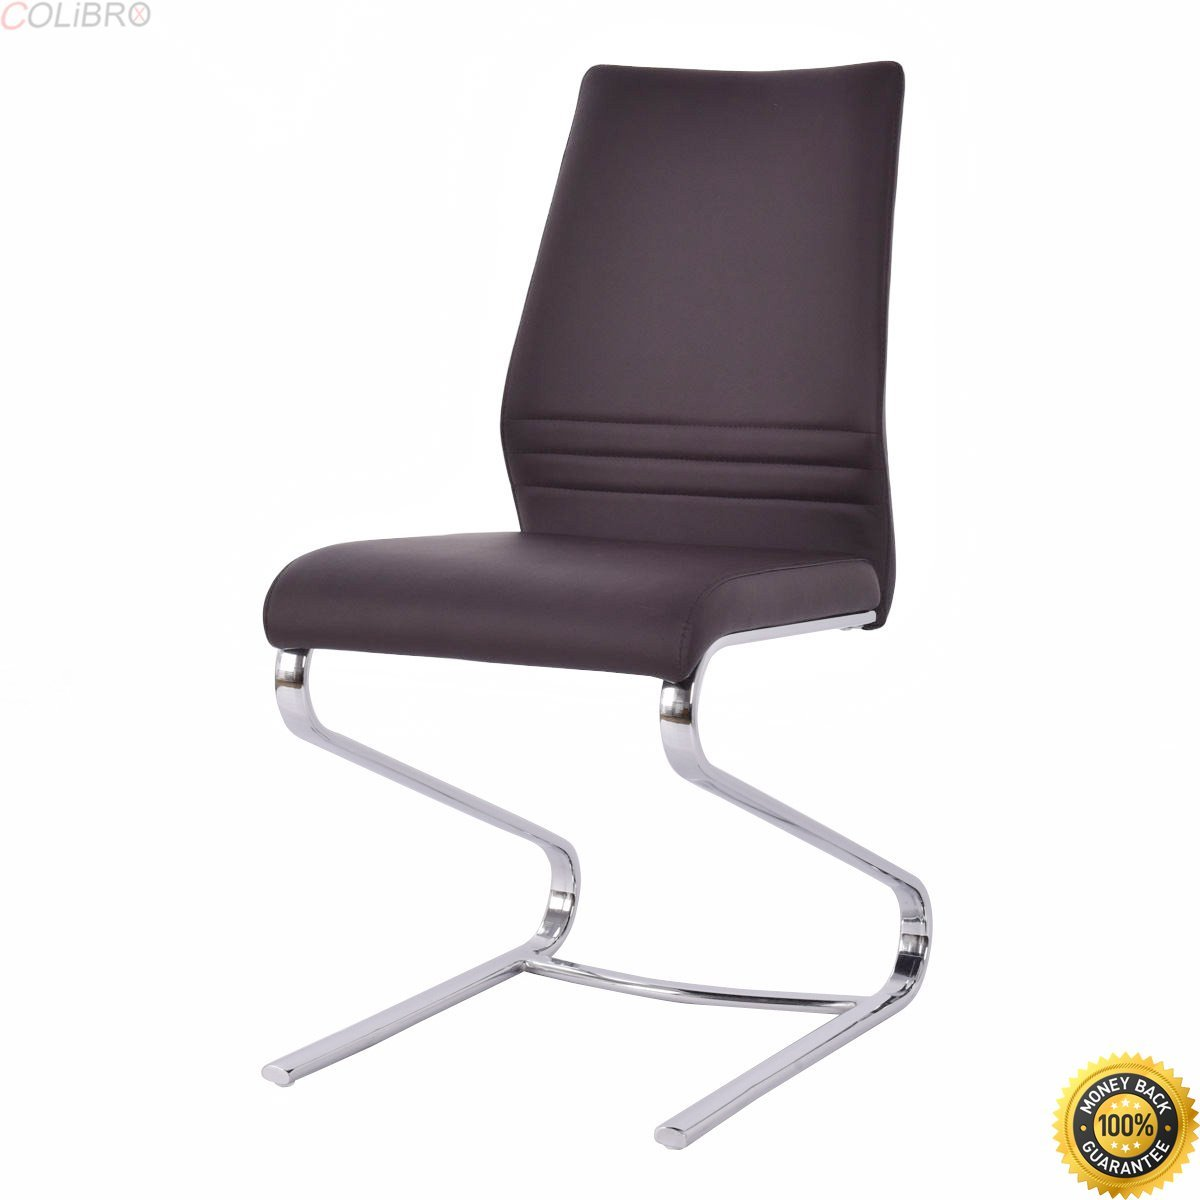 Cheap Modern Dining Chairs, find Modern Dining Chairs deals on